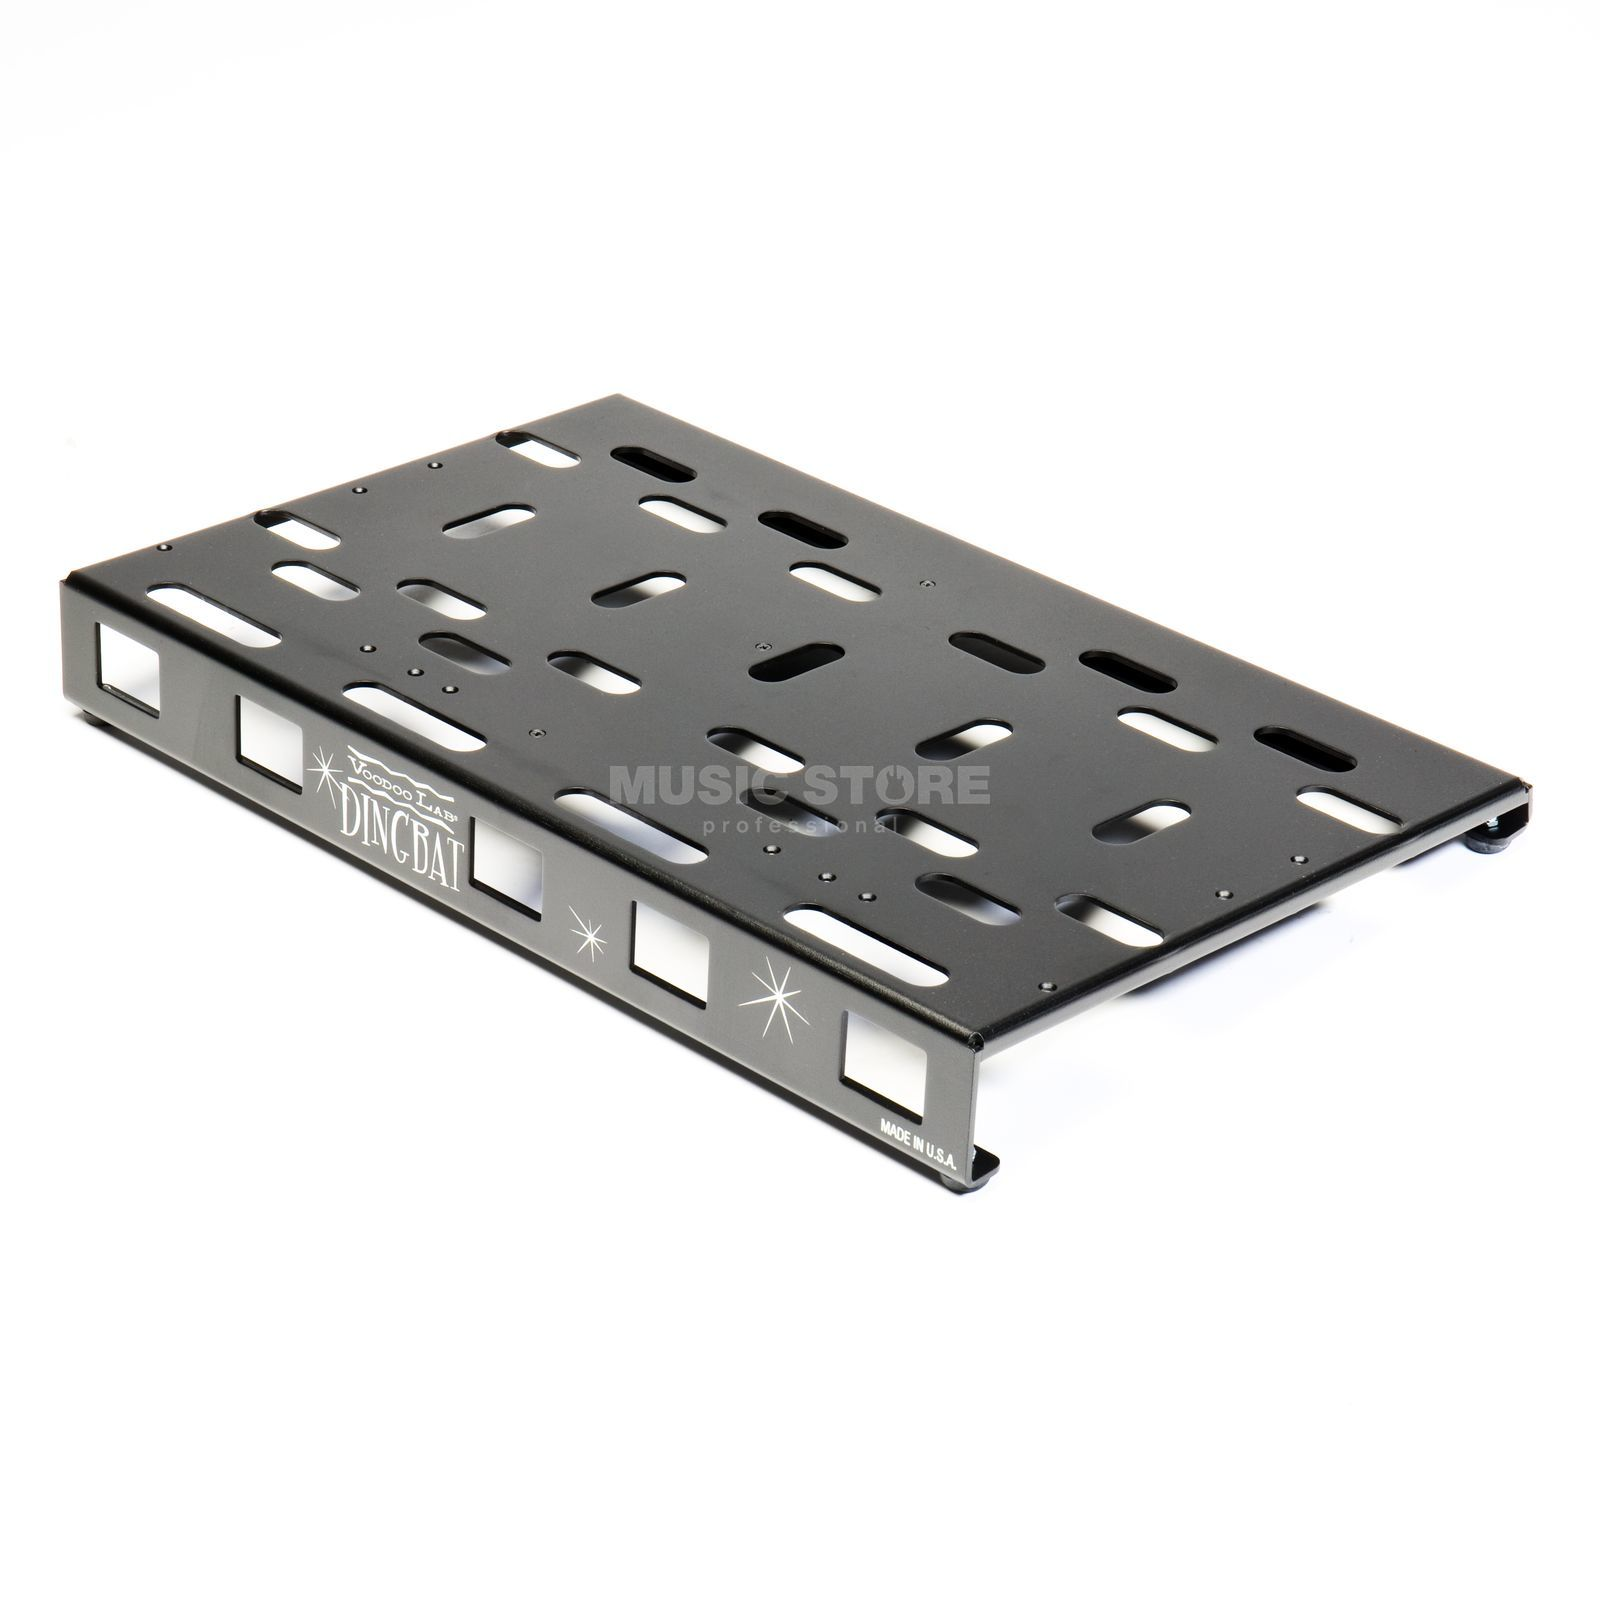 Voodoo-Lab Dingbat Medium Pedalboard Product Image